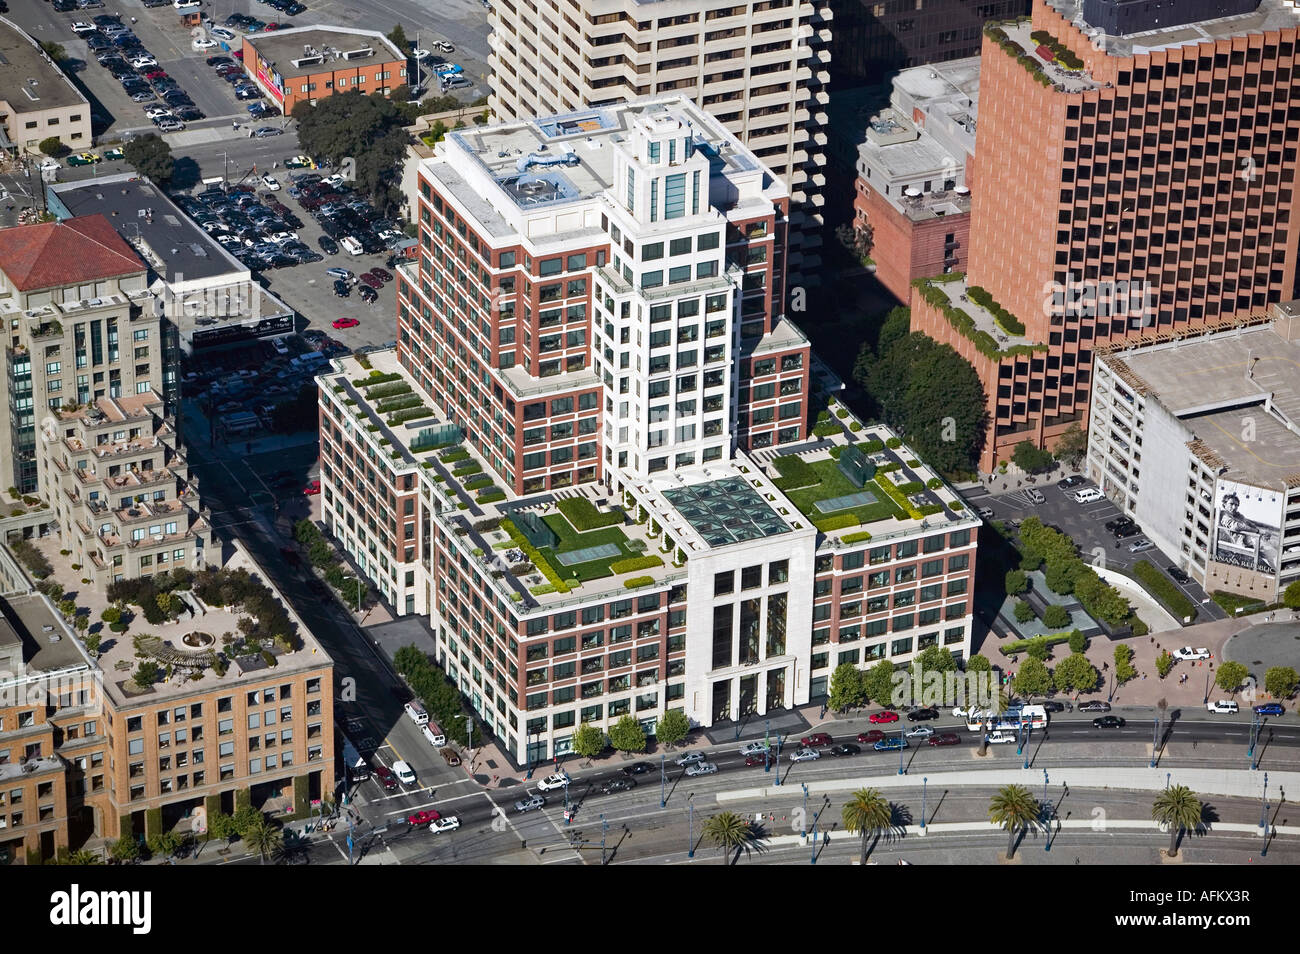 stock photo aerial view above the gap headquarters embarcadero san francisco designed by robert a m stern architects and gensler architect gensler location san francisco california